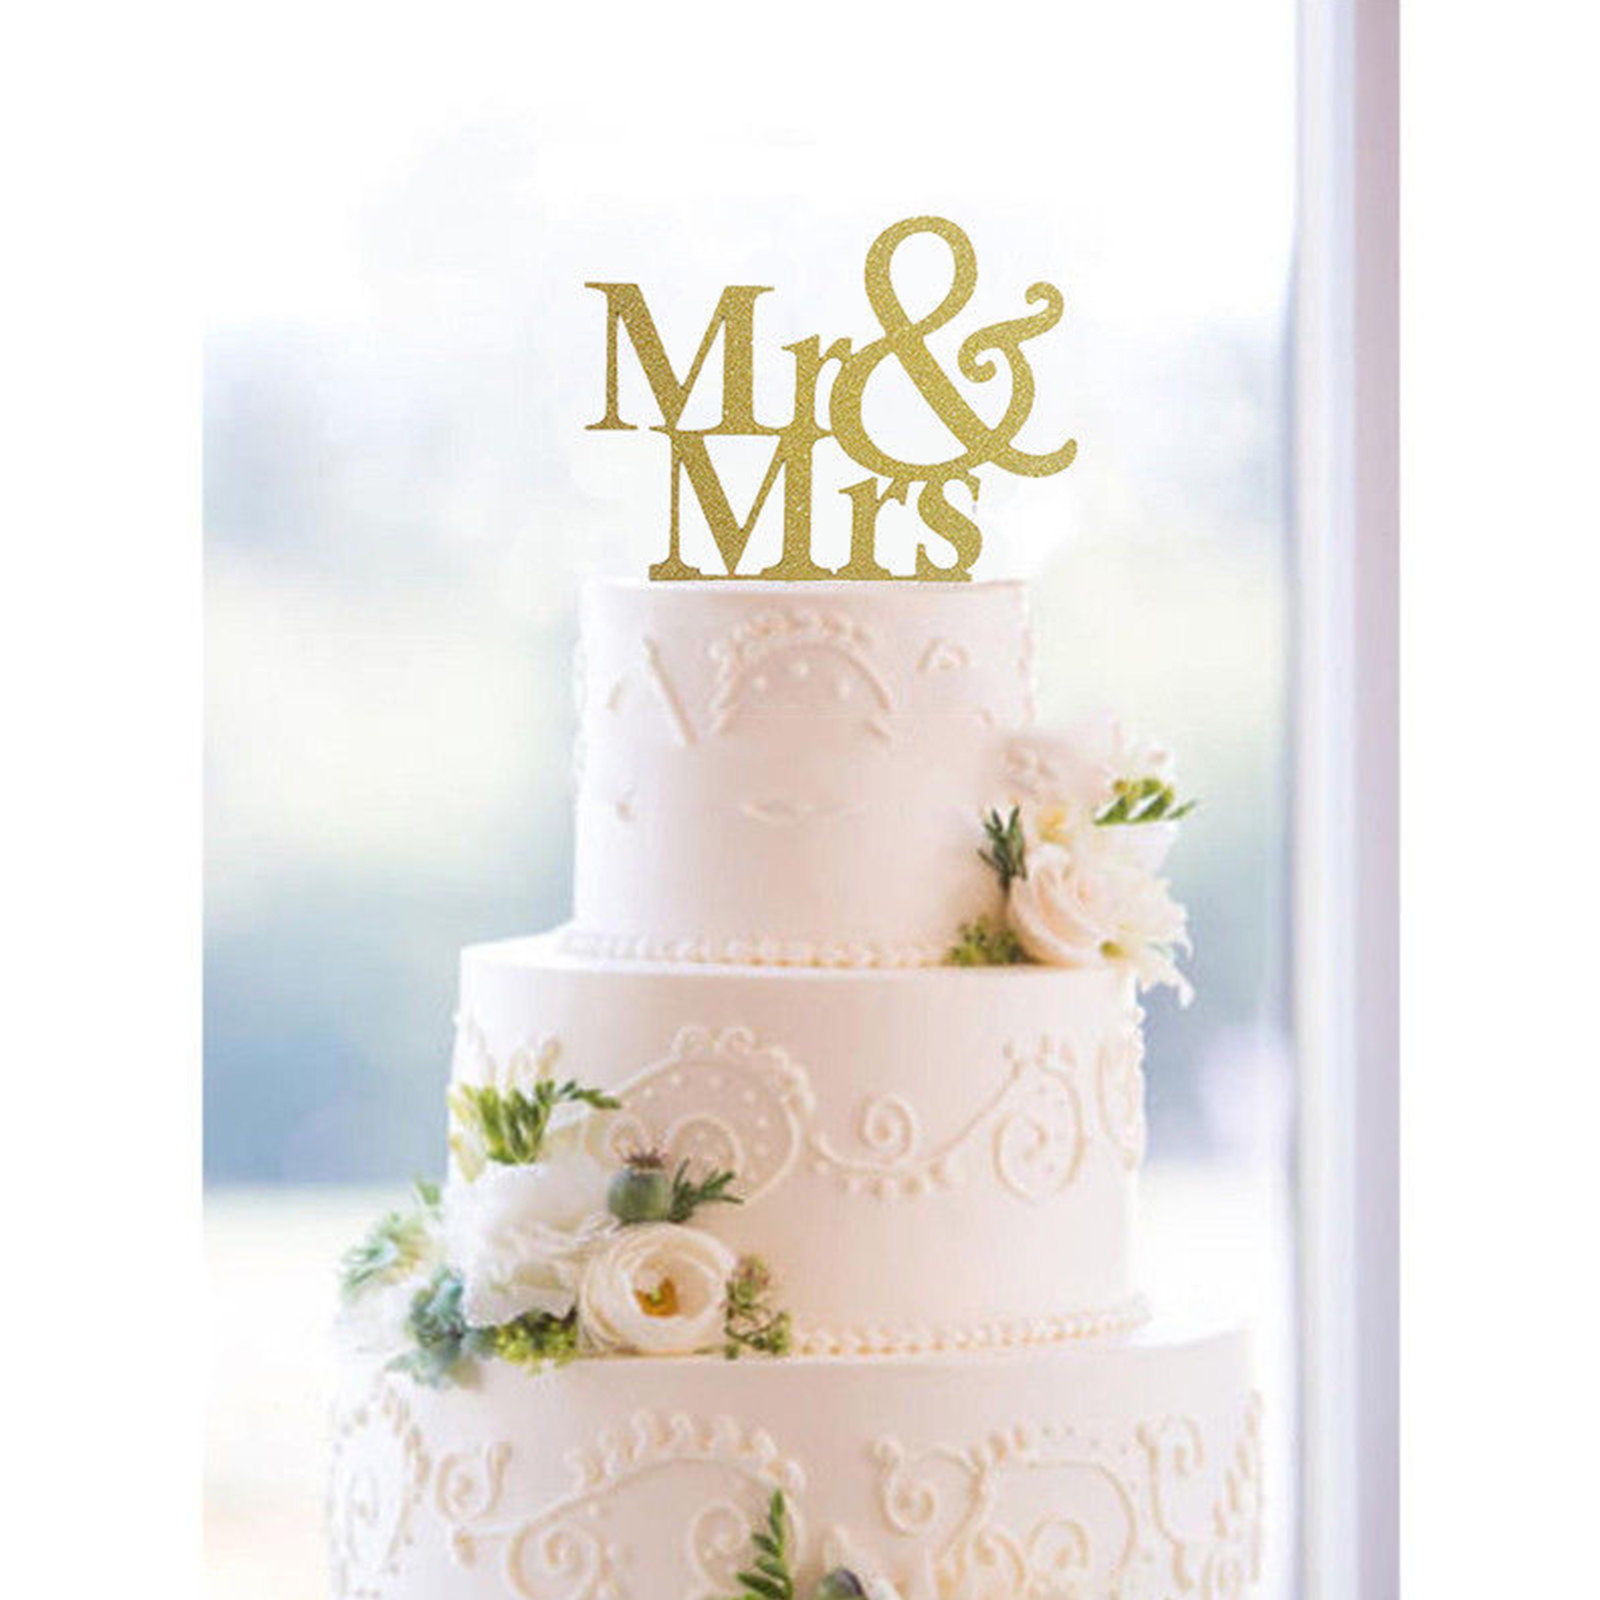 0.99 GBP - Mr And Mrs Gold Glitter Acrylic Cake Topper Bride And ...